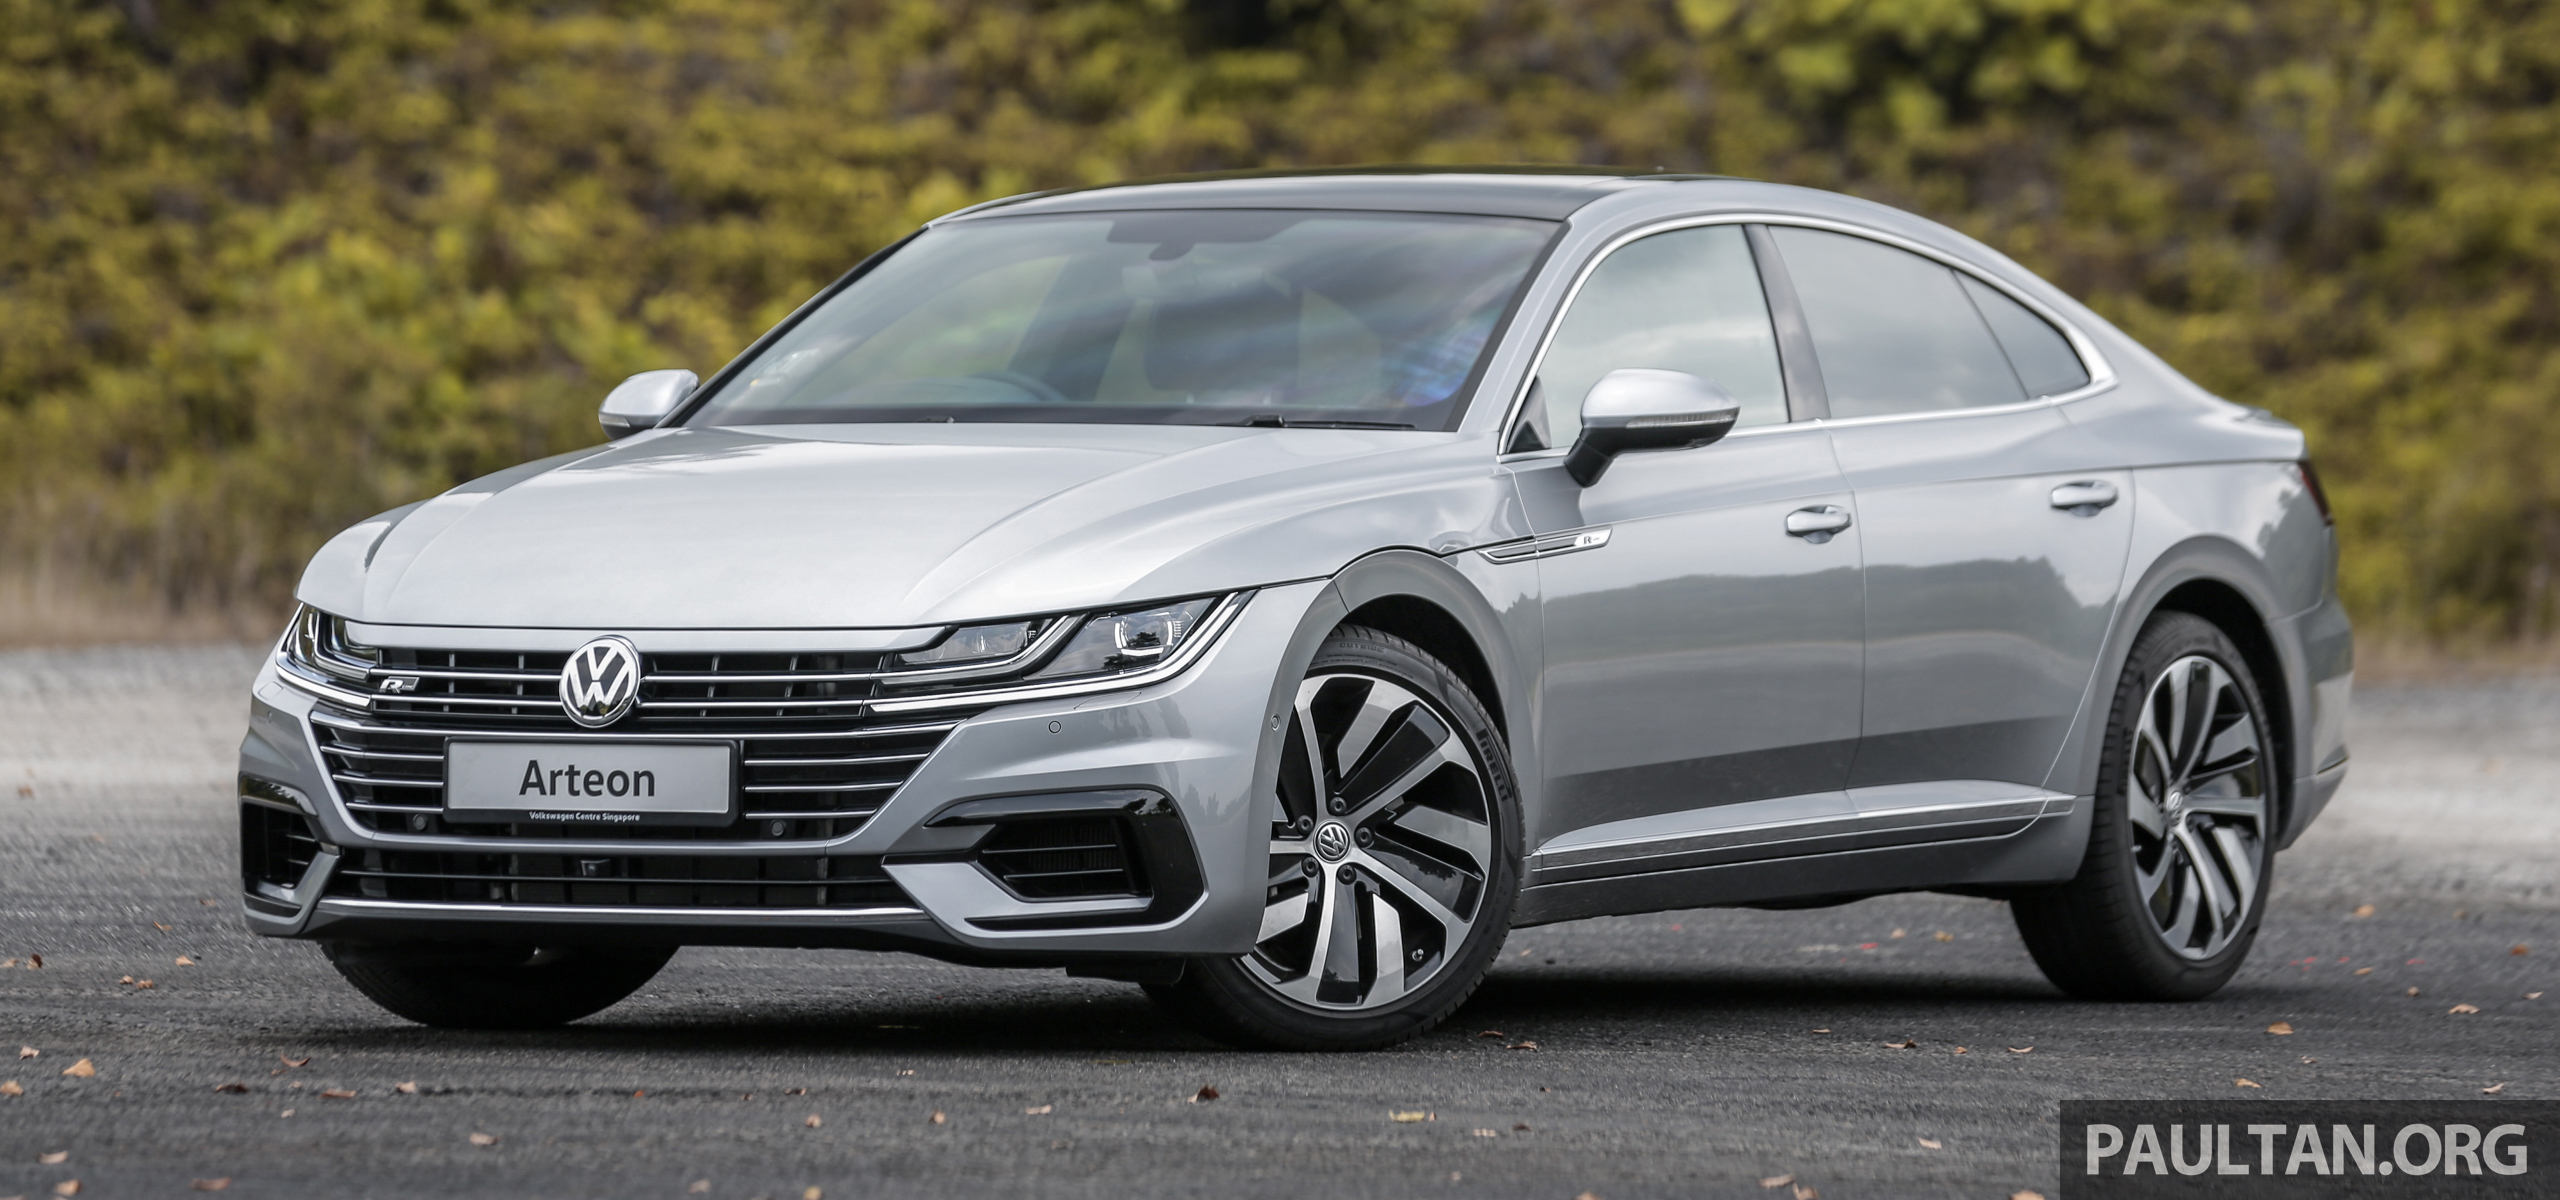 2020 Vw Arteon Passat R Line Launching On Aug 12 Paultan Org